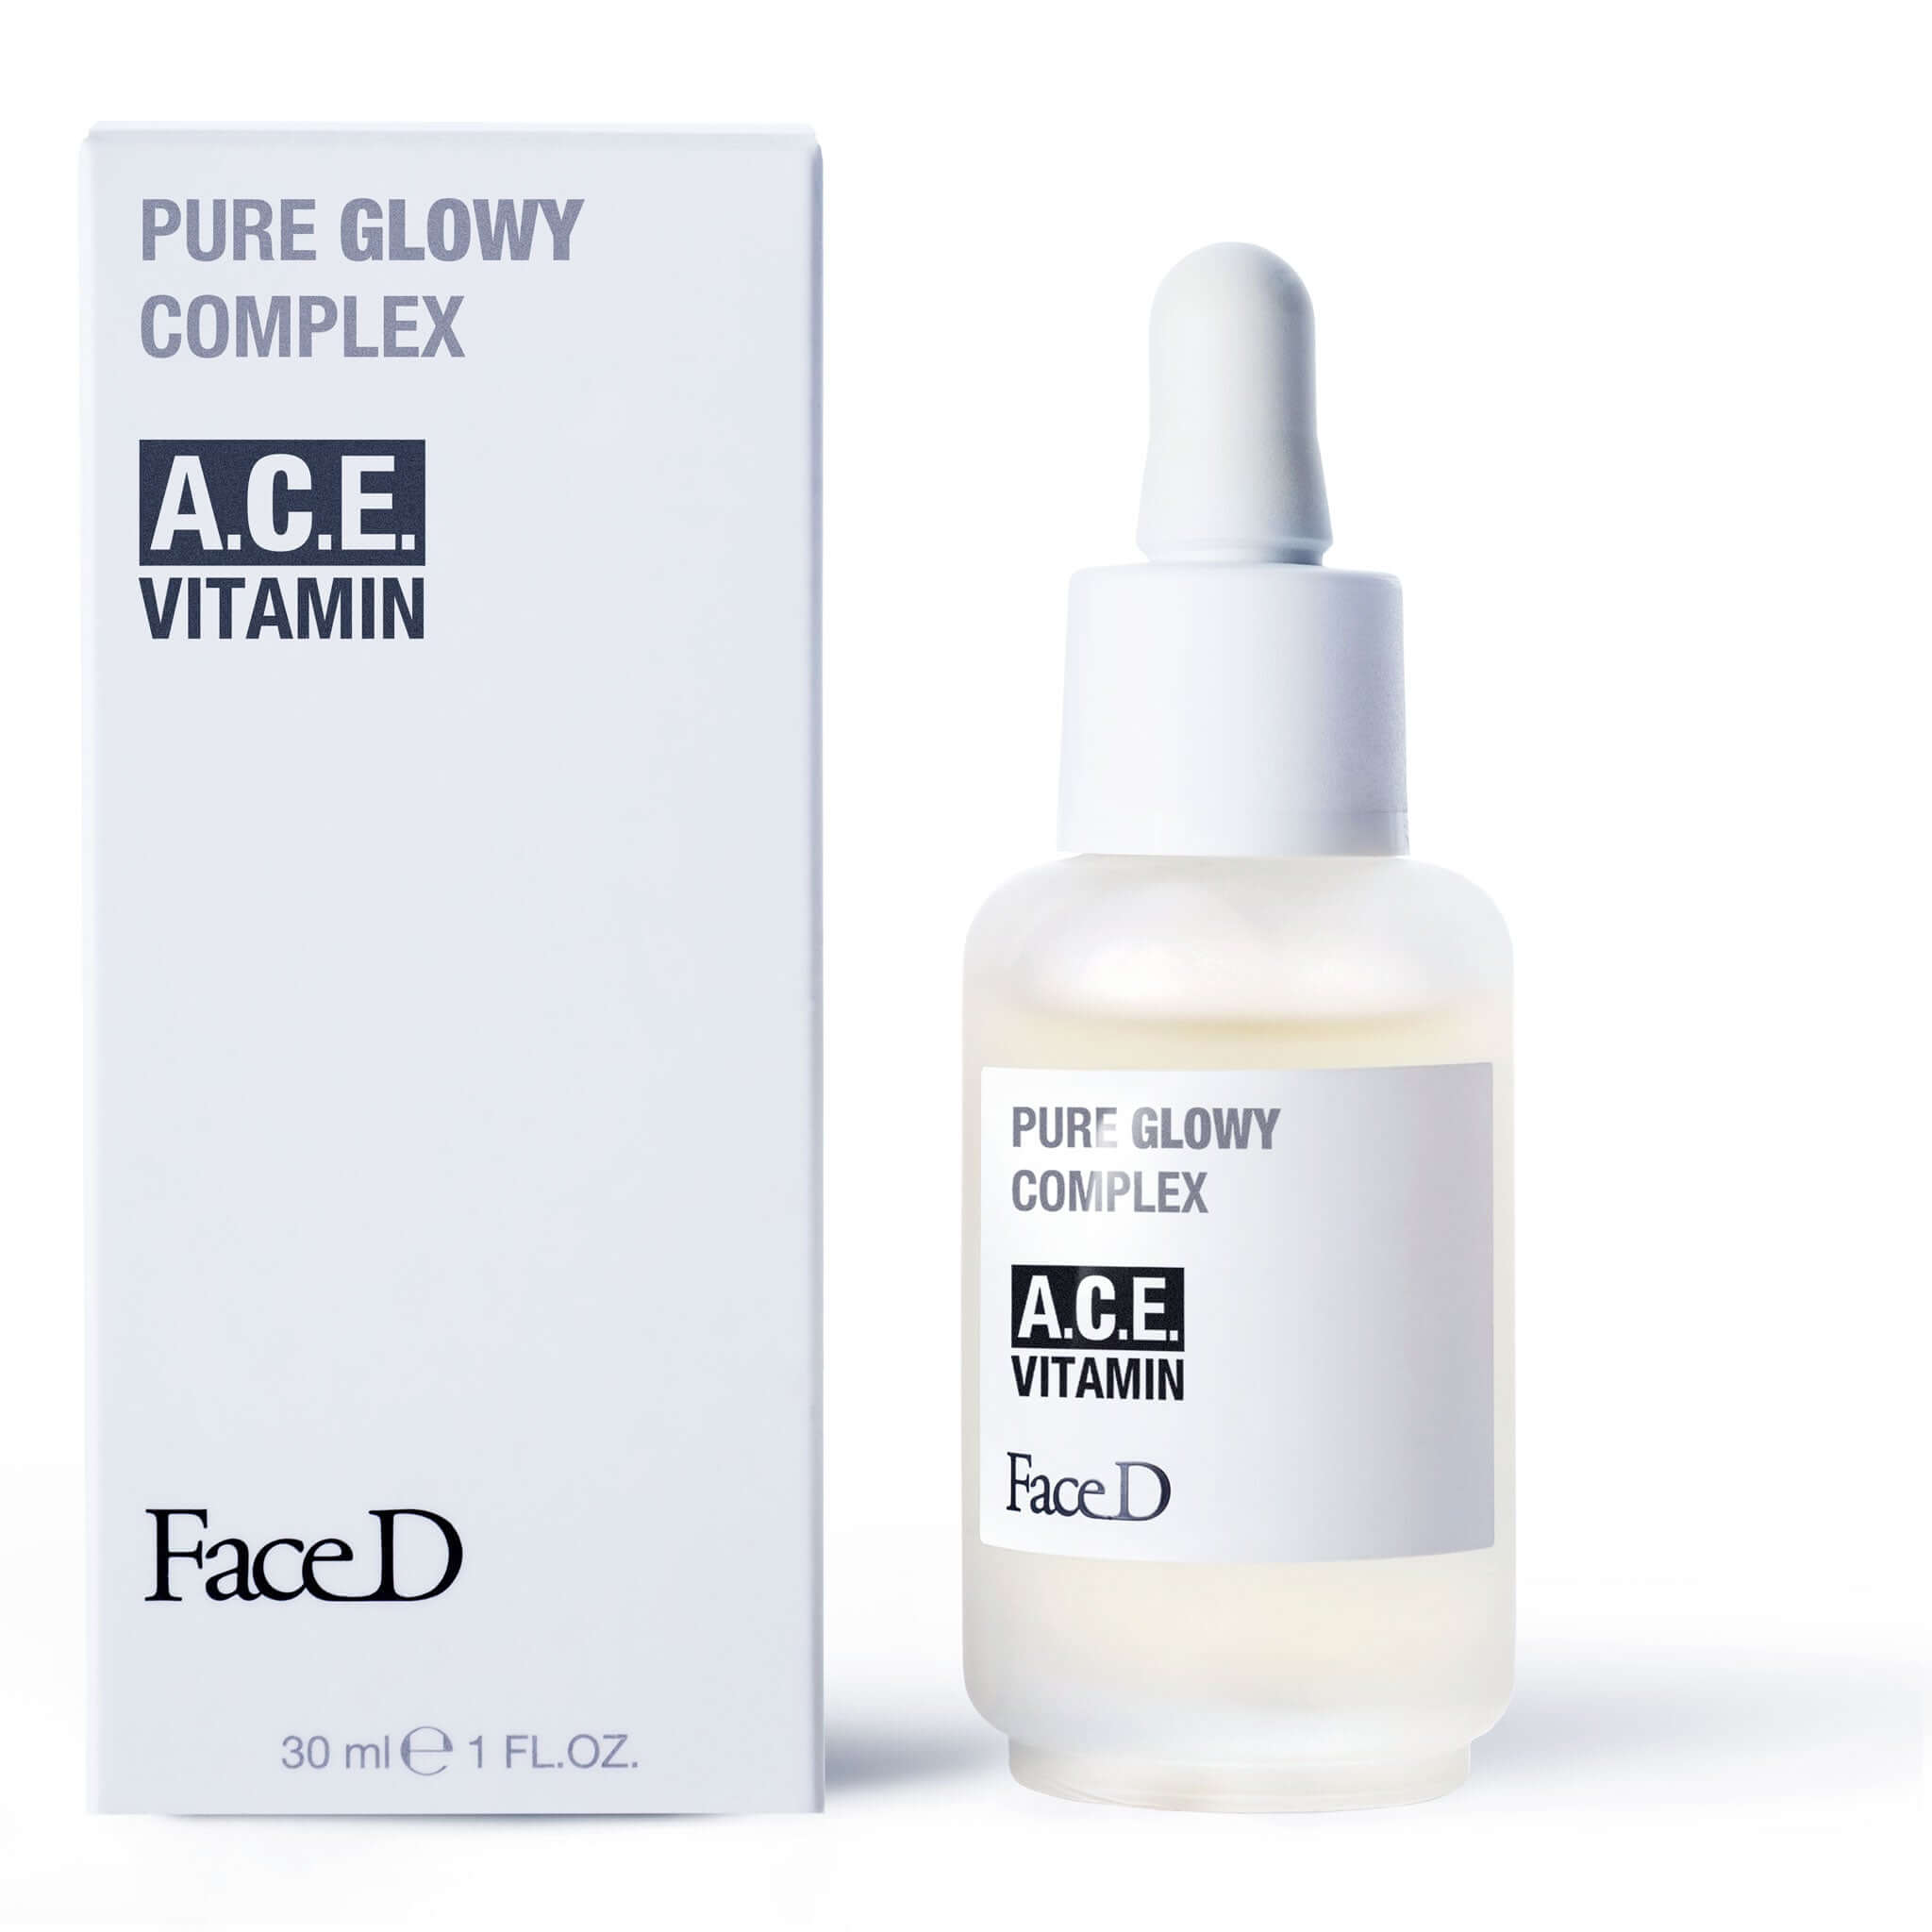 Pure-Glowy-complex-ace-vitamin-FaceD-Anti-Ageing-Anti-Wrinkle || Pure-Glowy-complesso-vitamine-ACE-FaceD-Antietà-Antirughe